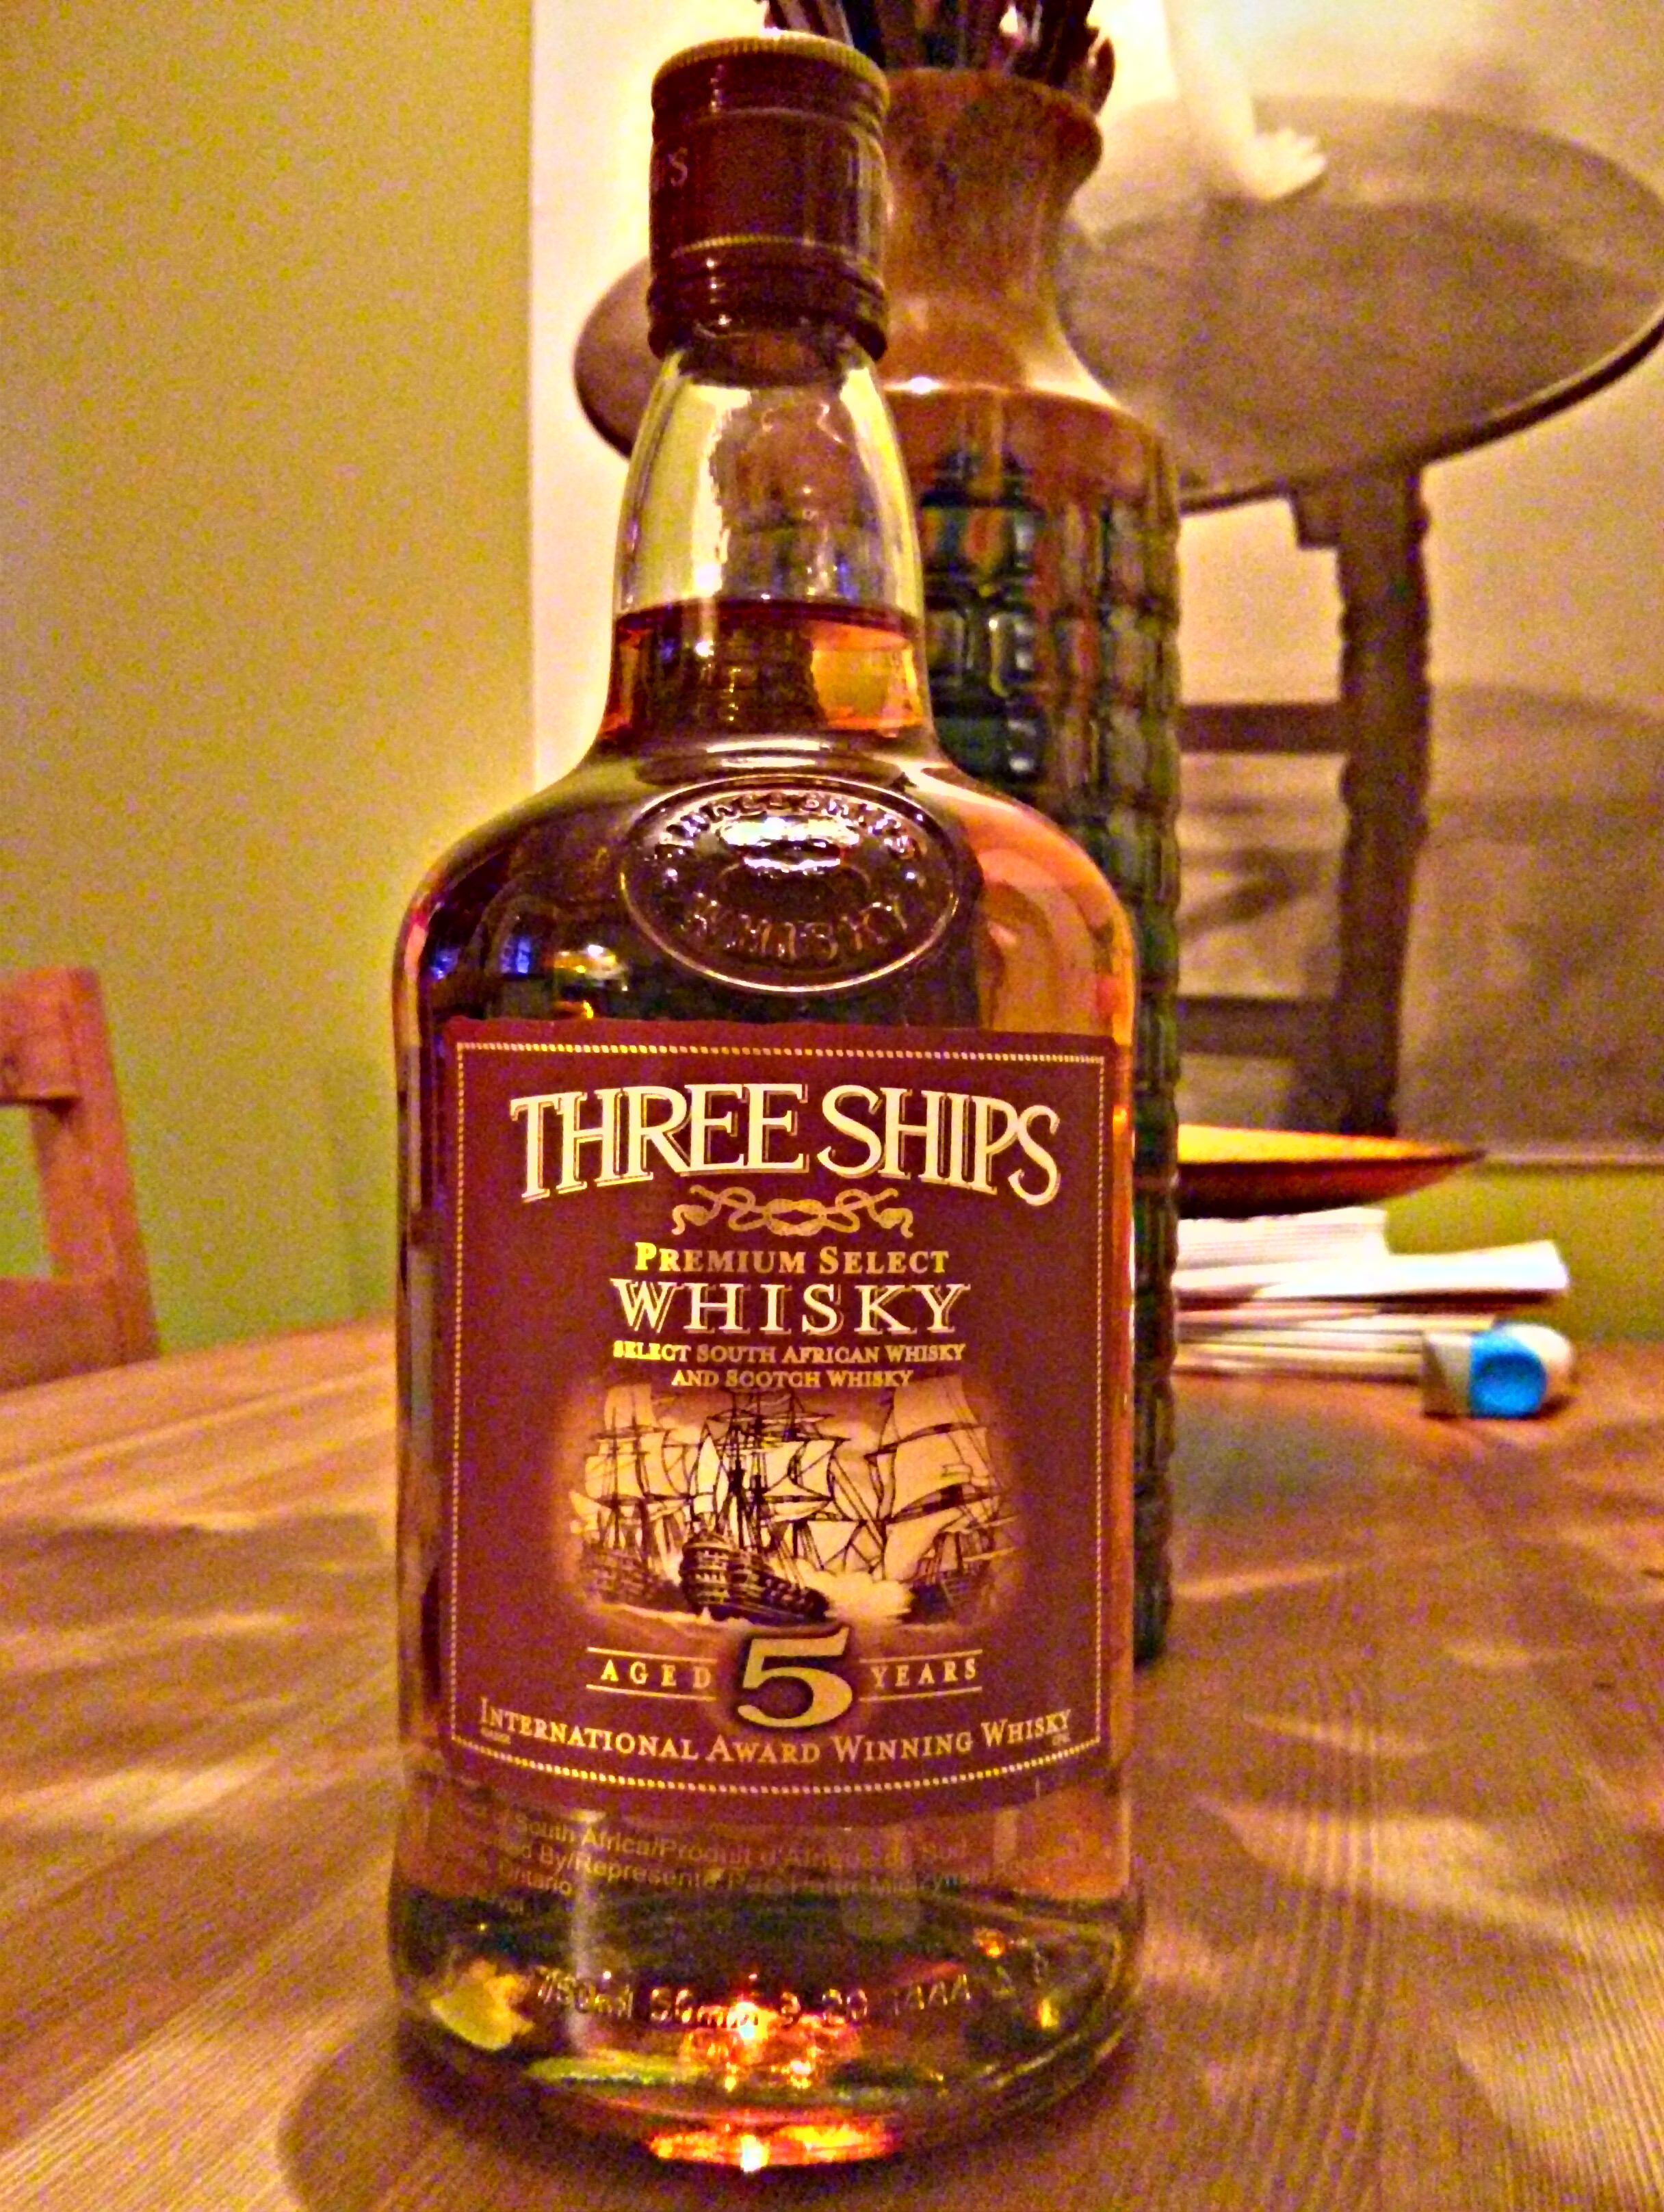 Three Ships Premium Select Whisky 5y with Dan & Goran